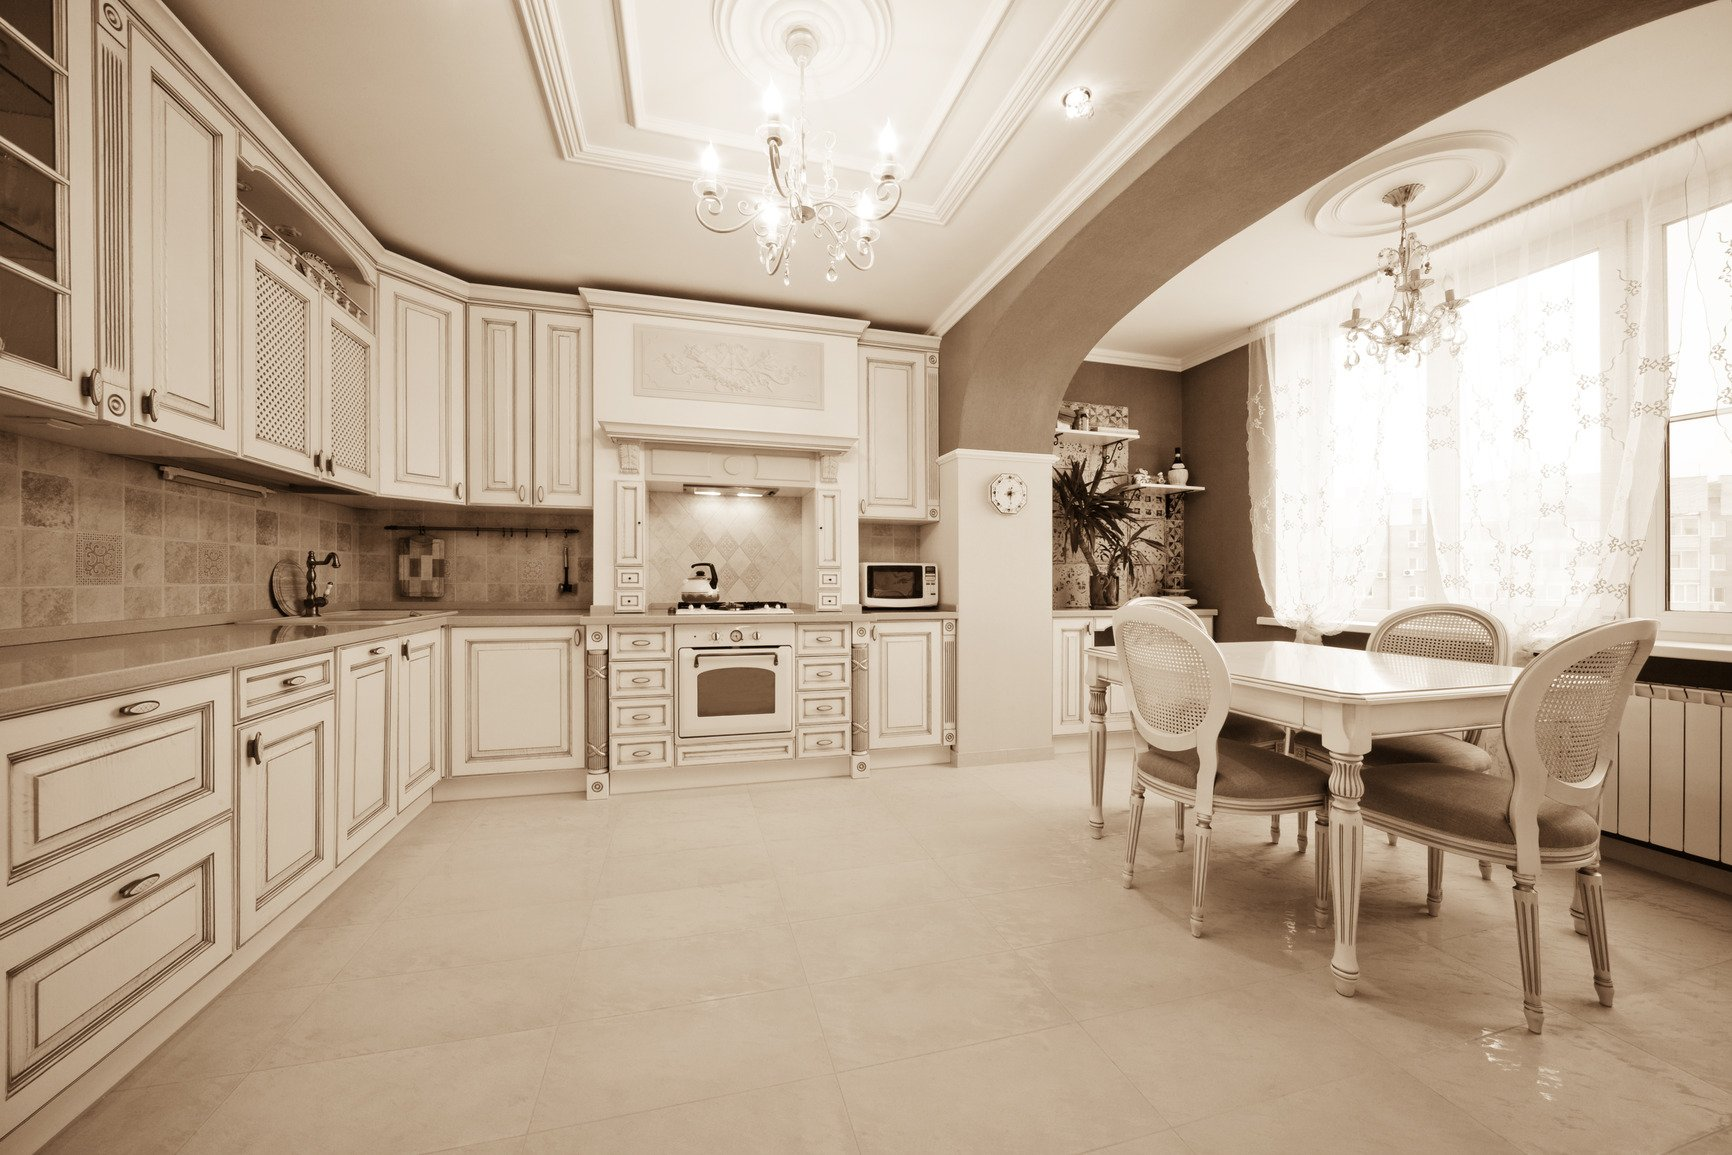 Kitchen Cabinets Surrey BC   Custom Kitchen Cabinets Vancouver North,  Burnaby, Lower Mainland